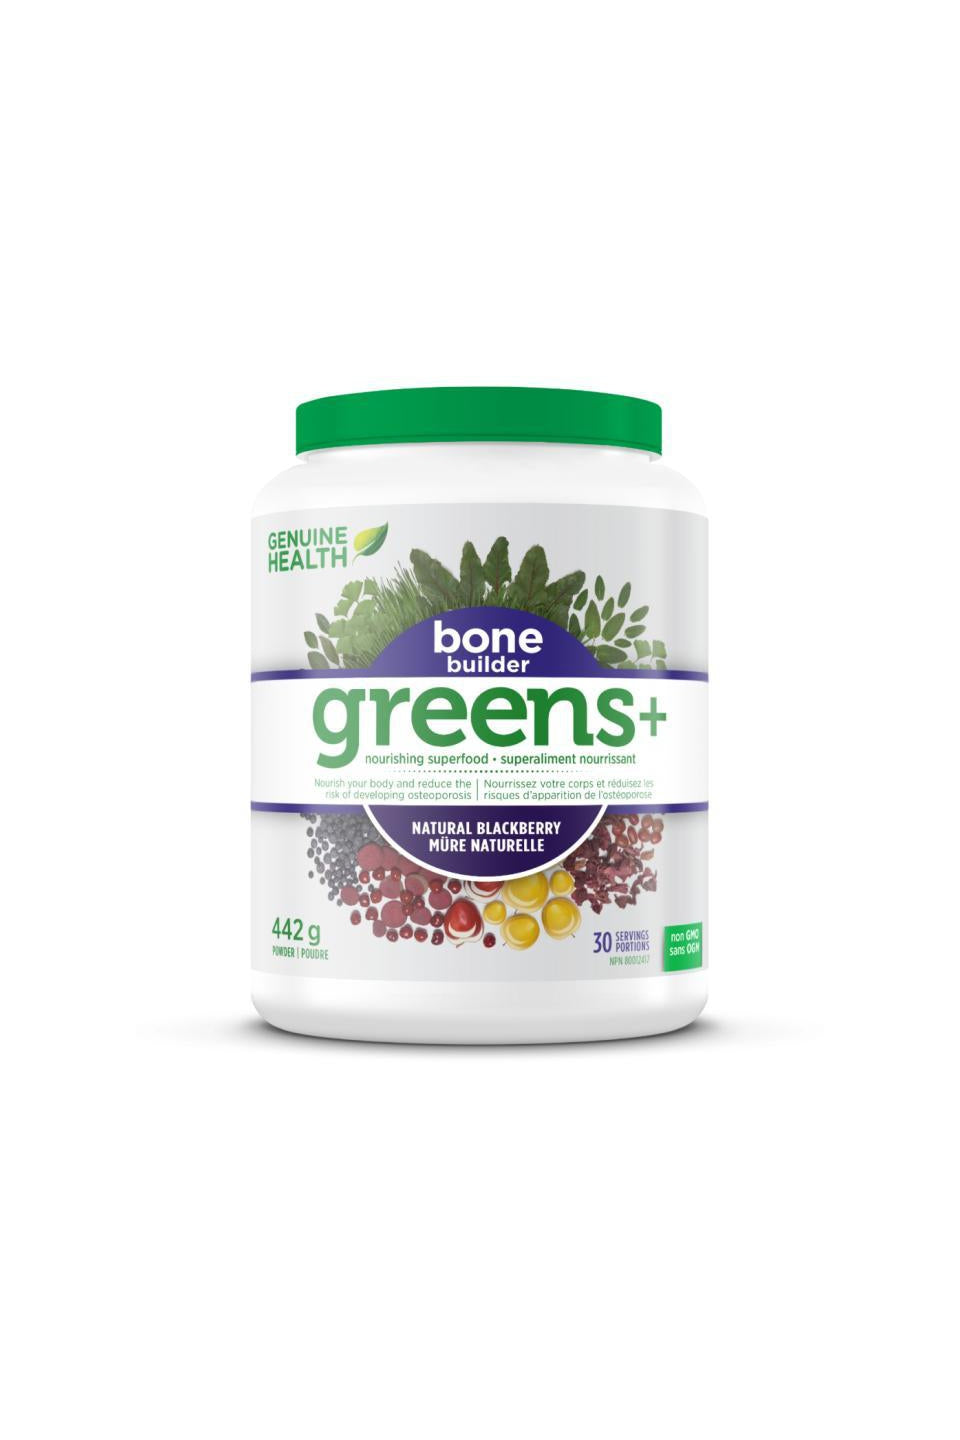 Genuine Health Greens+ Bone Builder - Natural Blackberry Flavour 442g